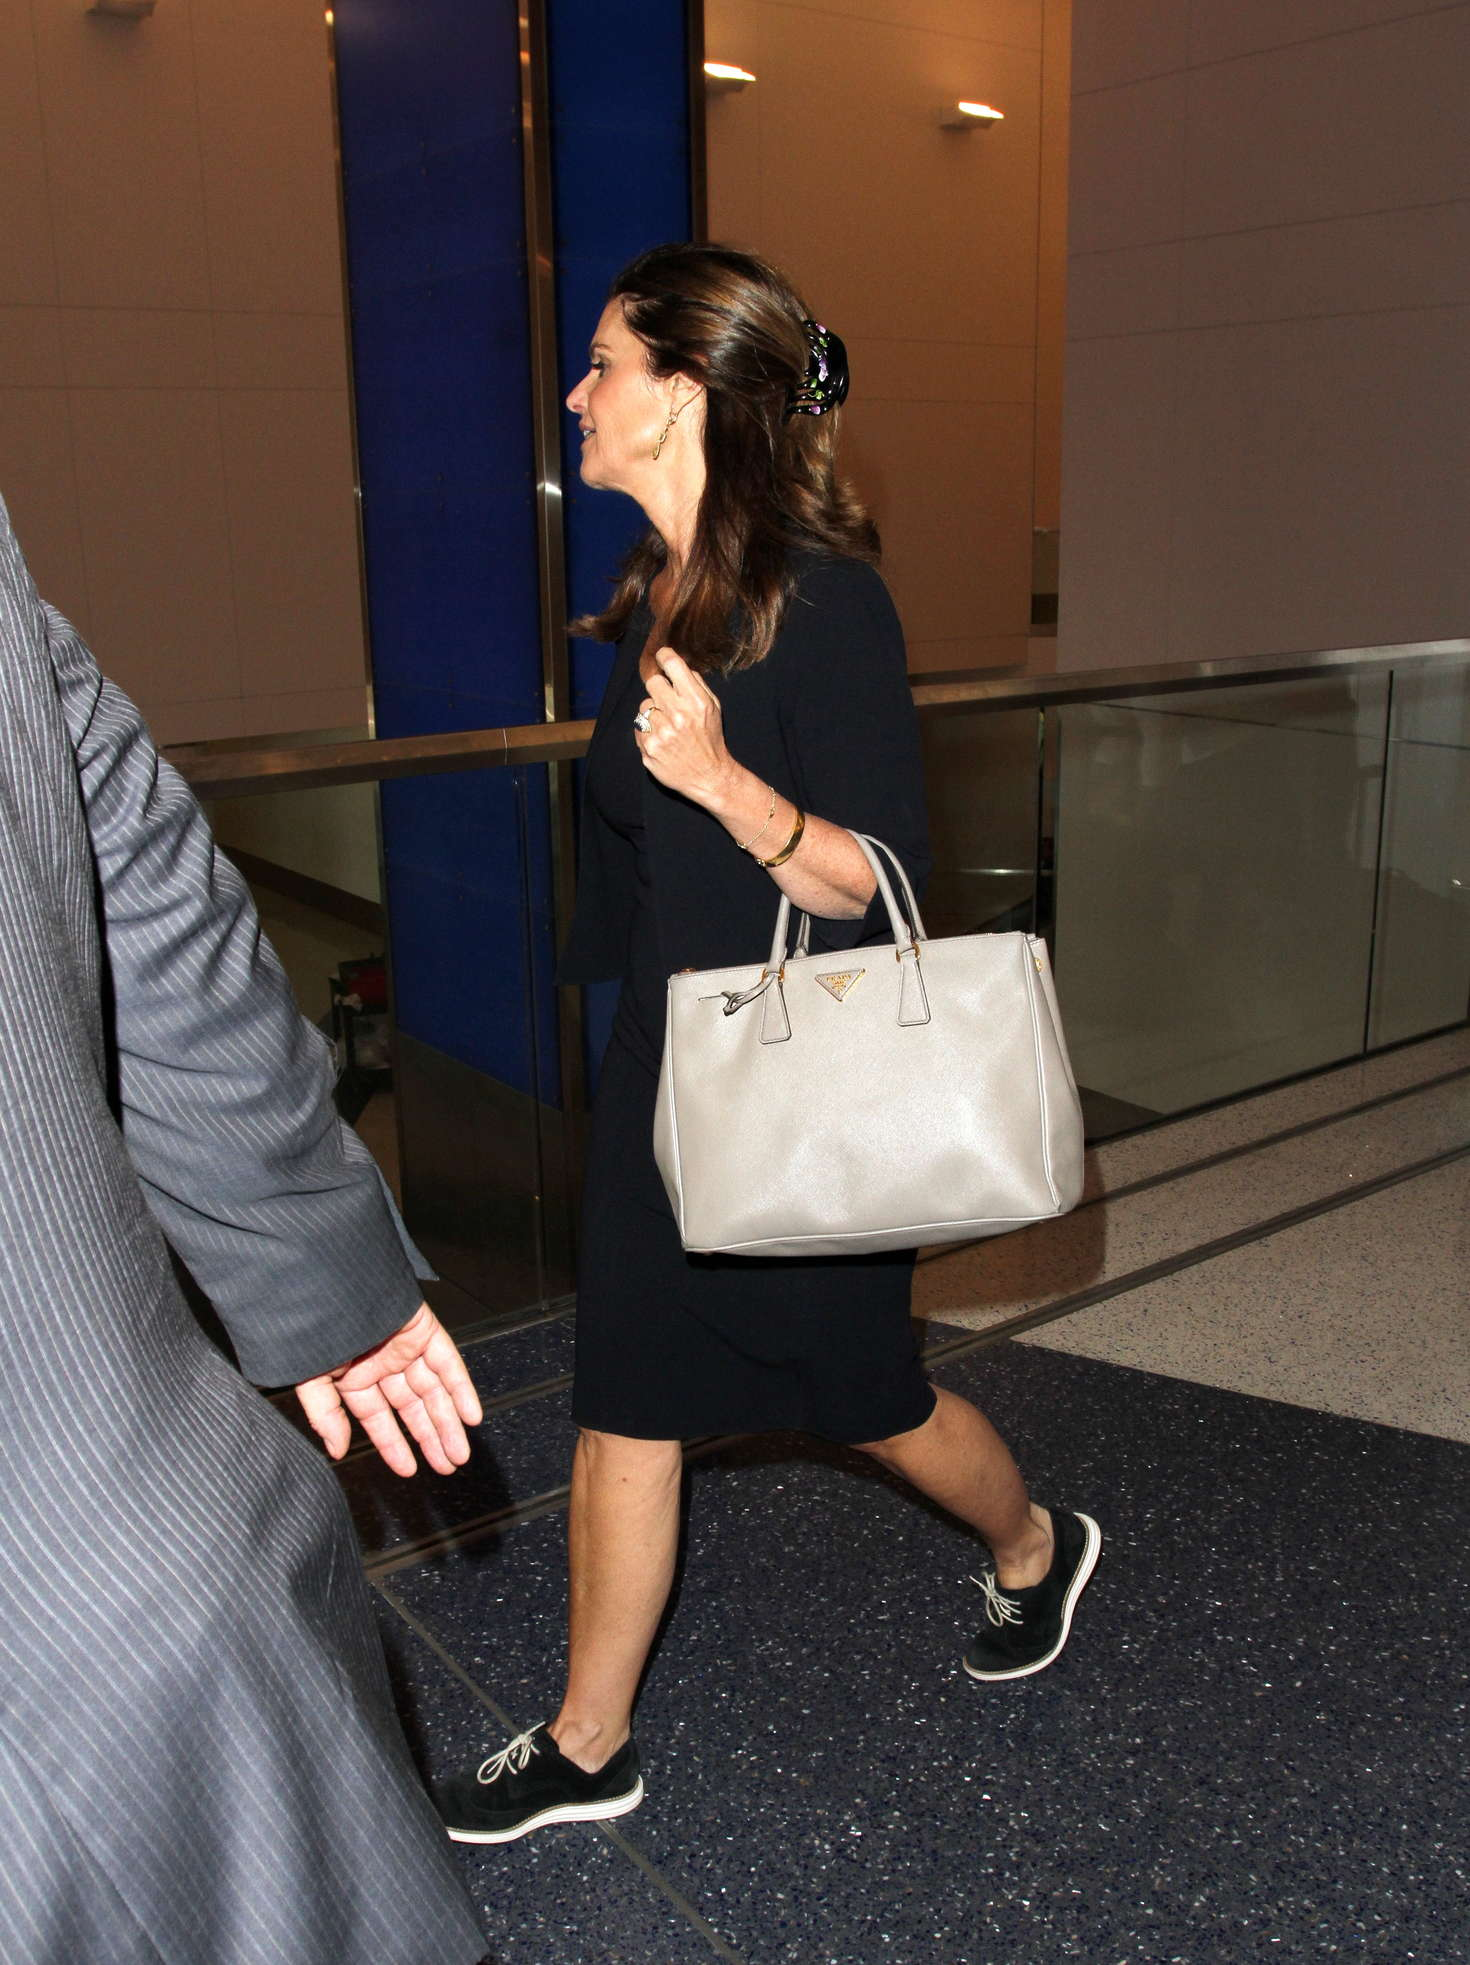 Maria Shriver at LAX Airport in Los Angeles